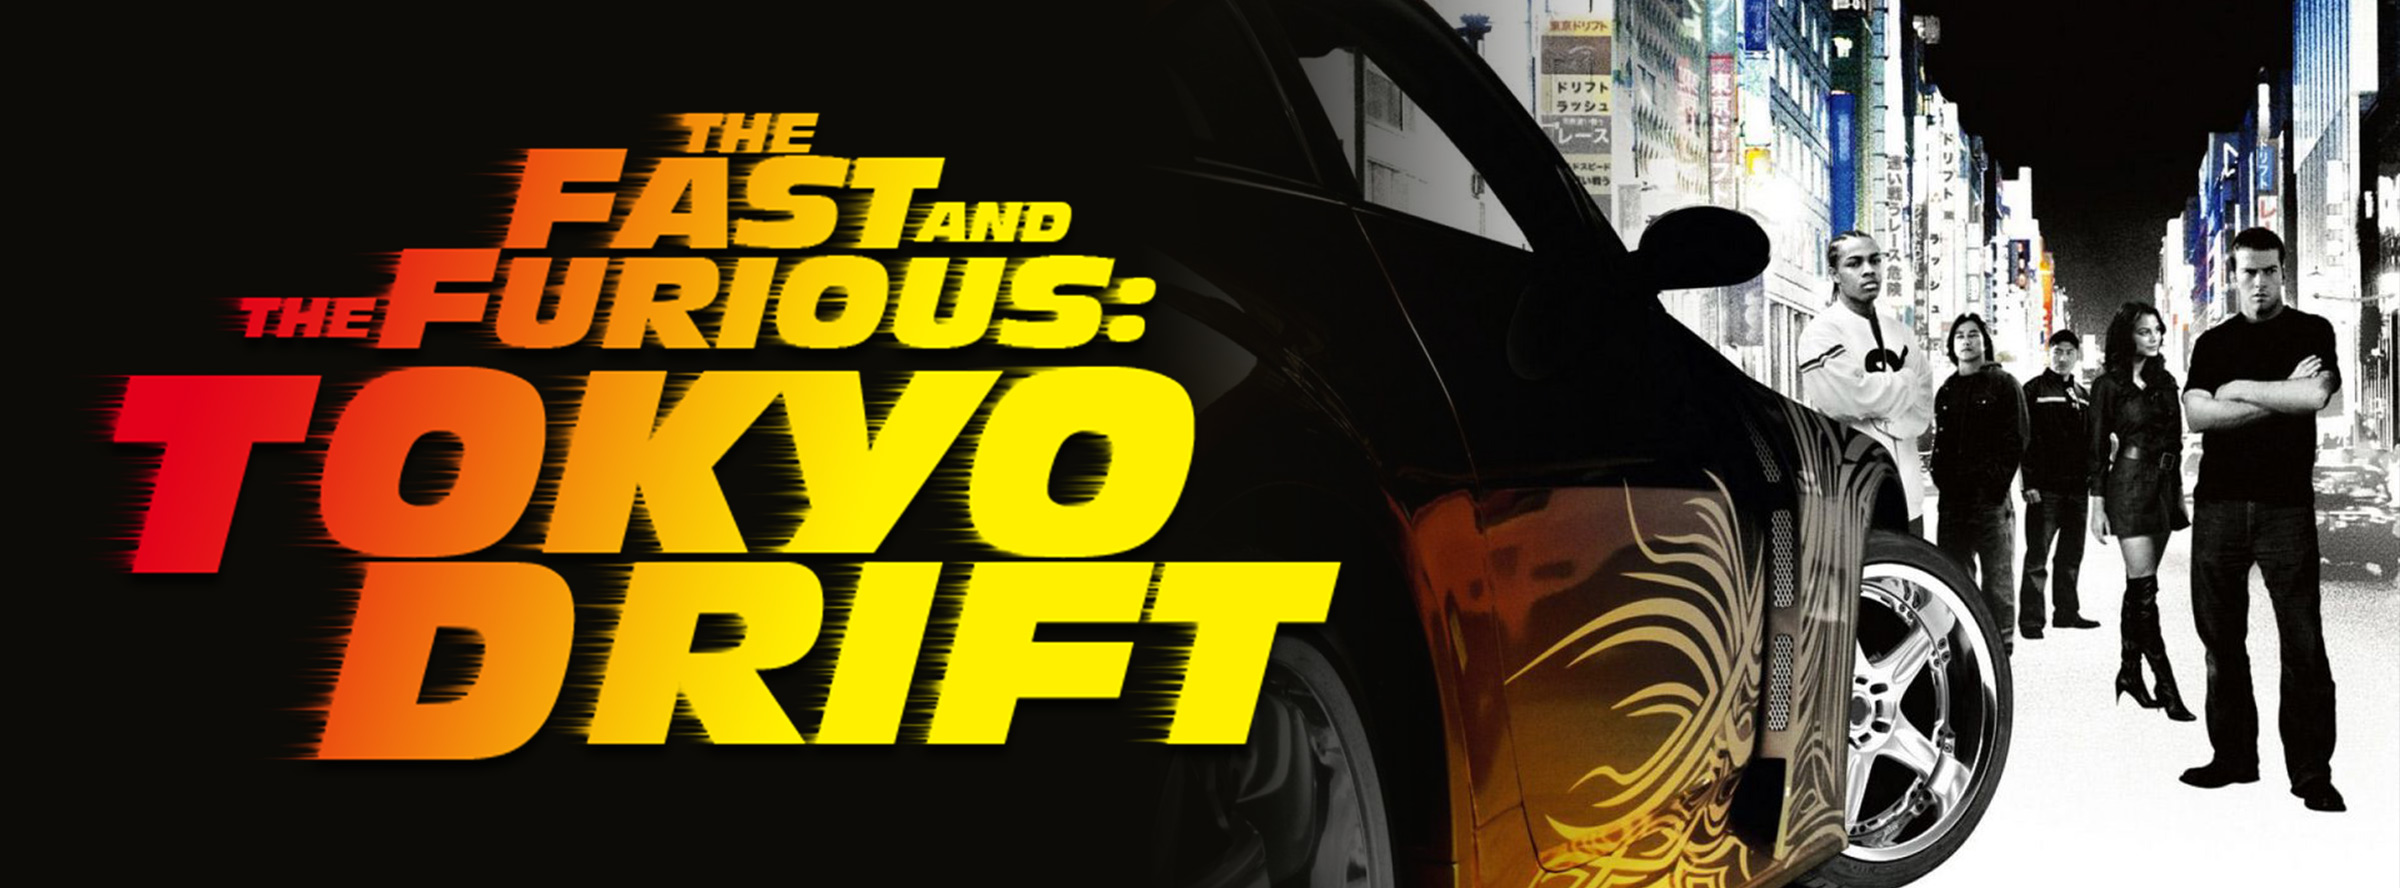 Slider Image for The Fast and the Furious: Tokyo Drift